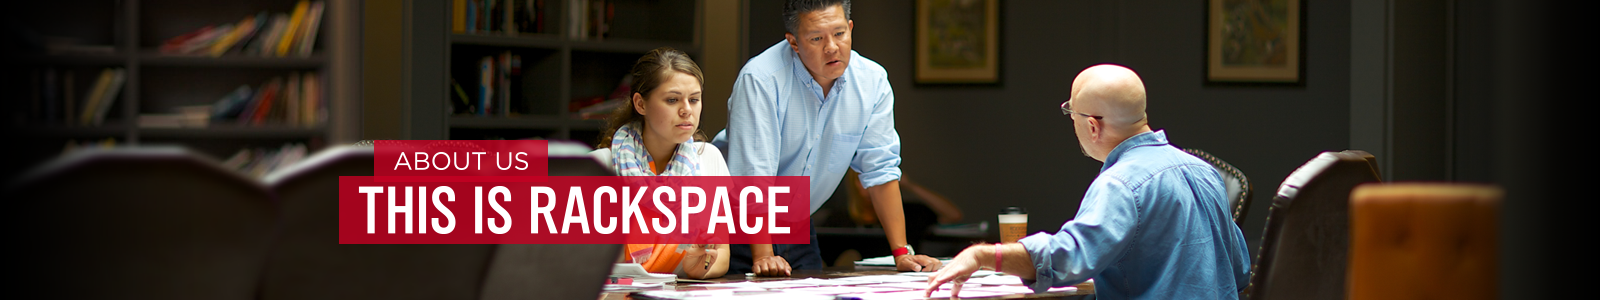 Rackspace Leadership